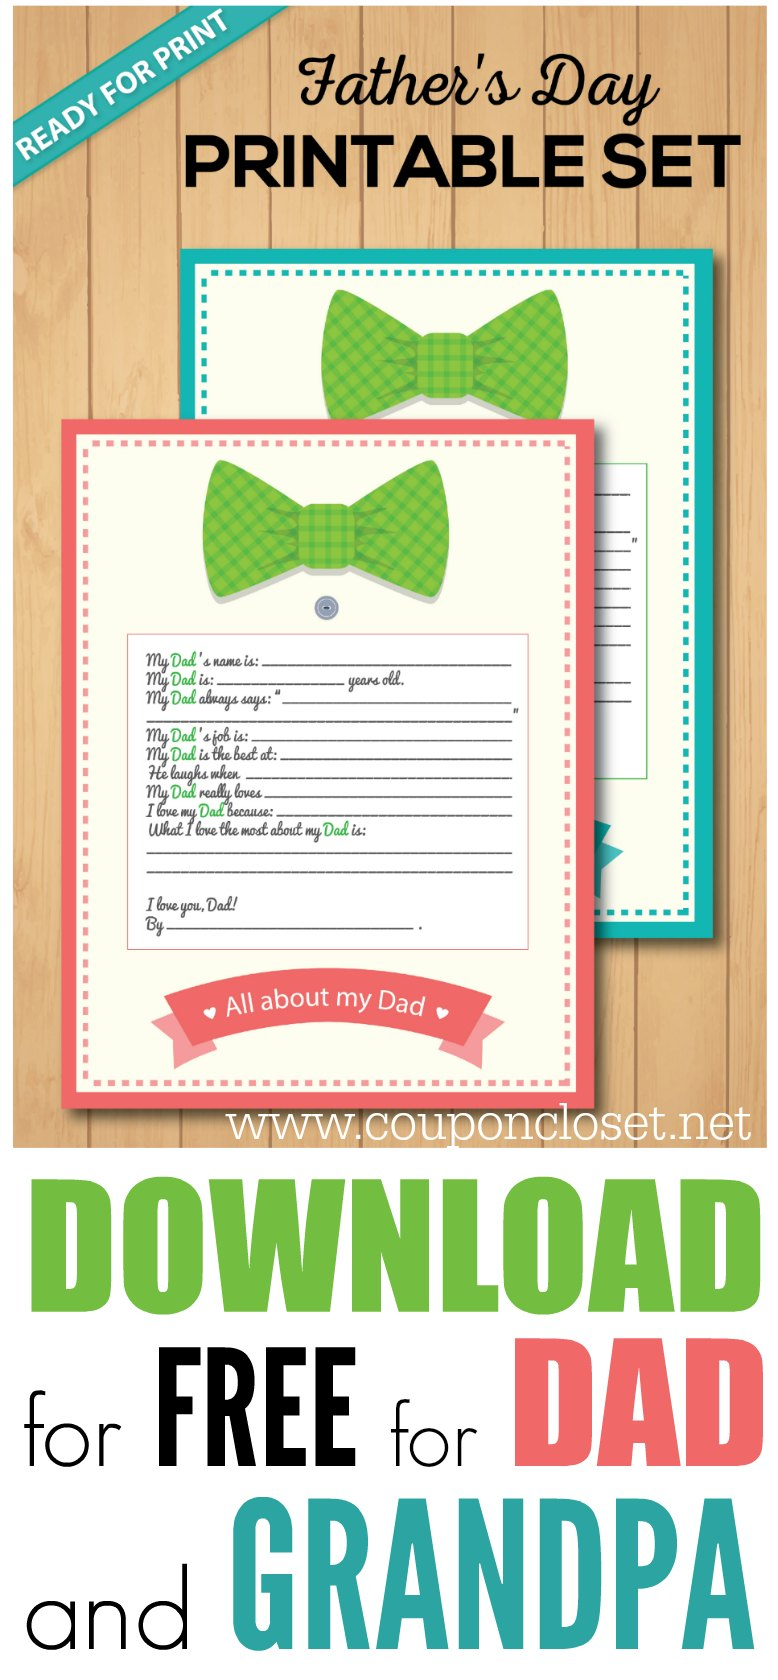 free fathers day printable - the best fathers day gift idea